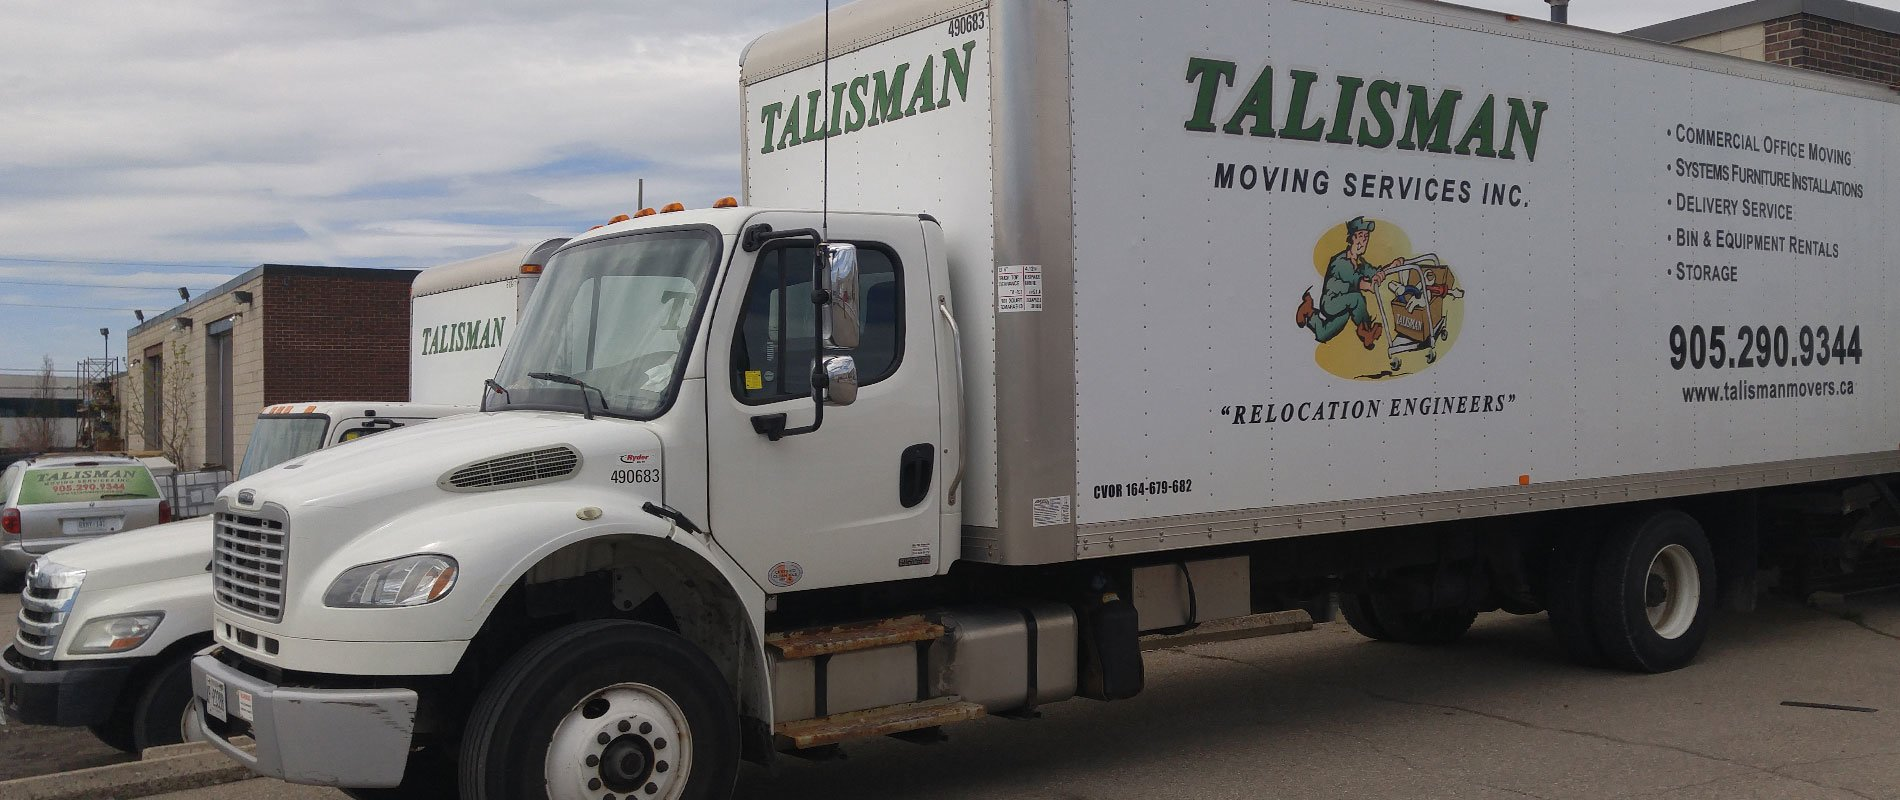 Talisman Movers can dispose your old office furniture